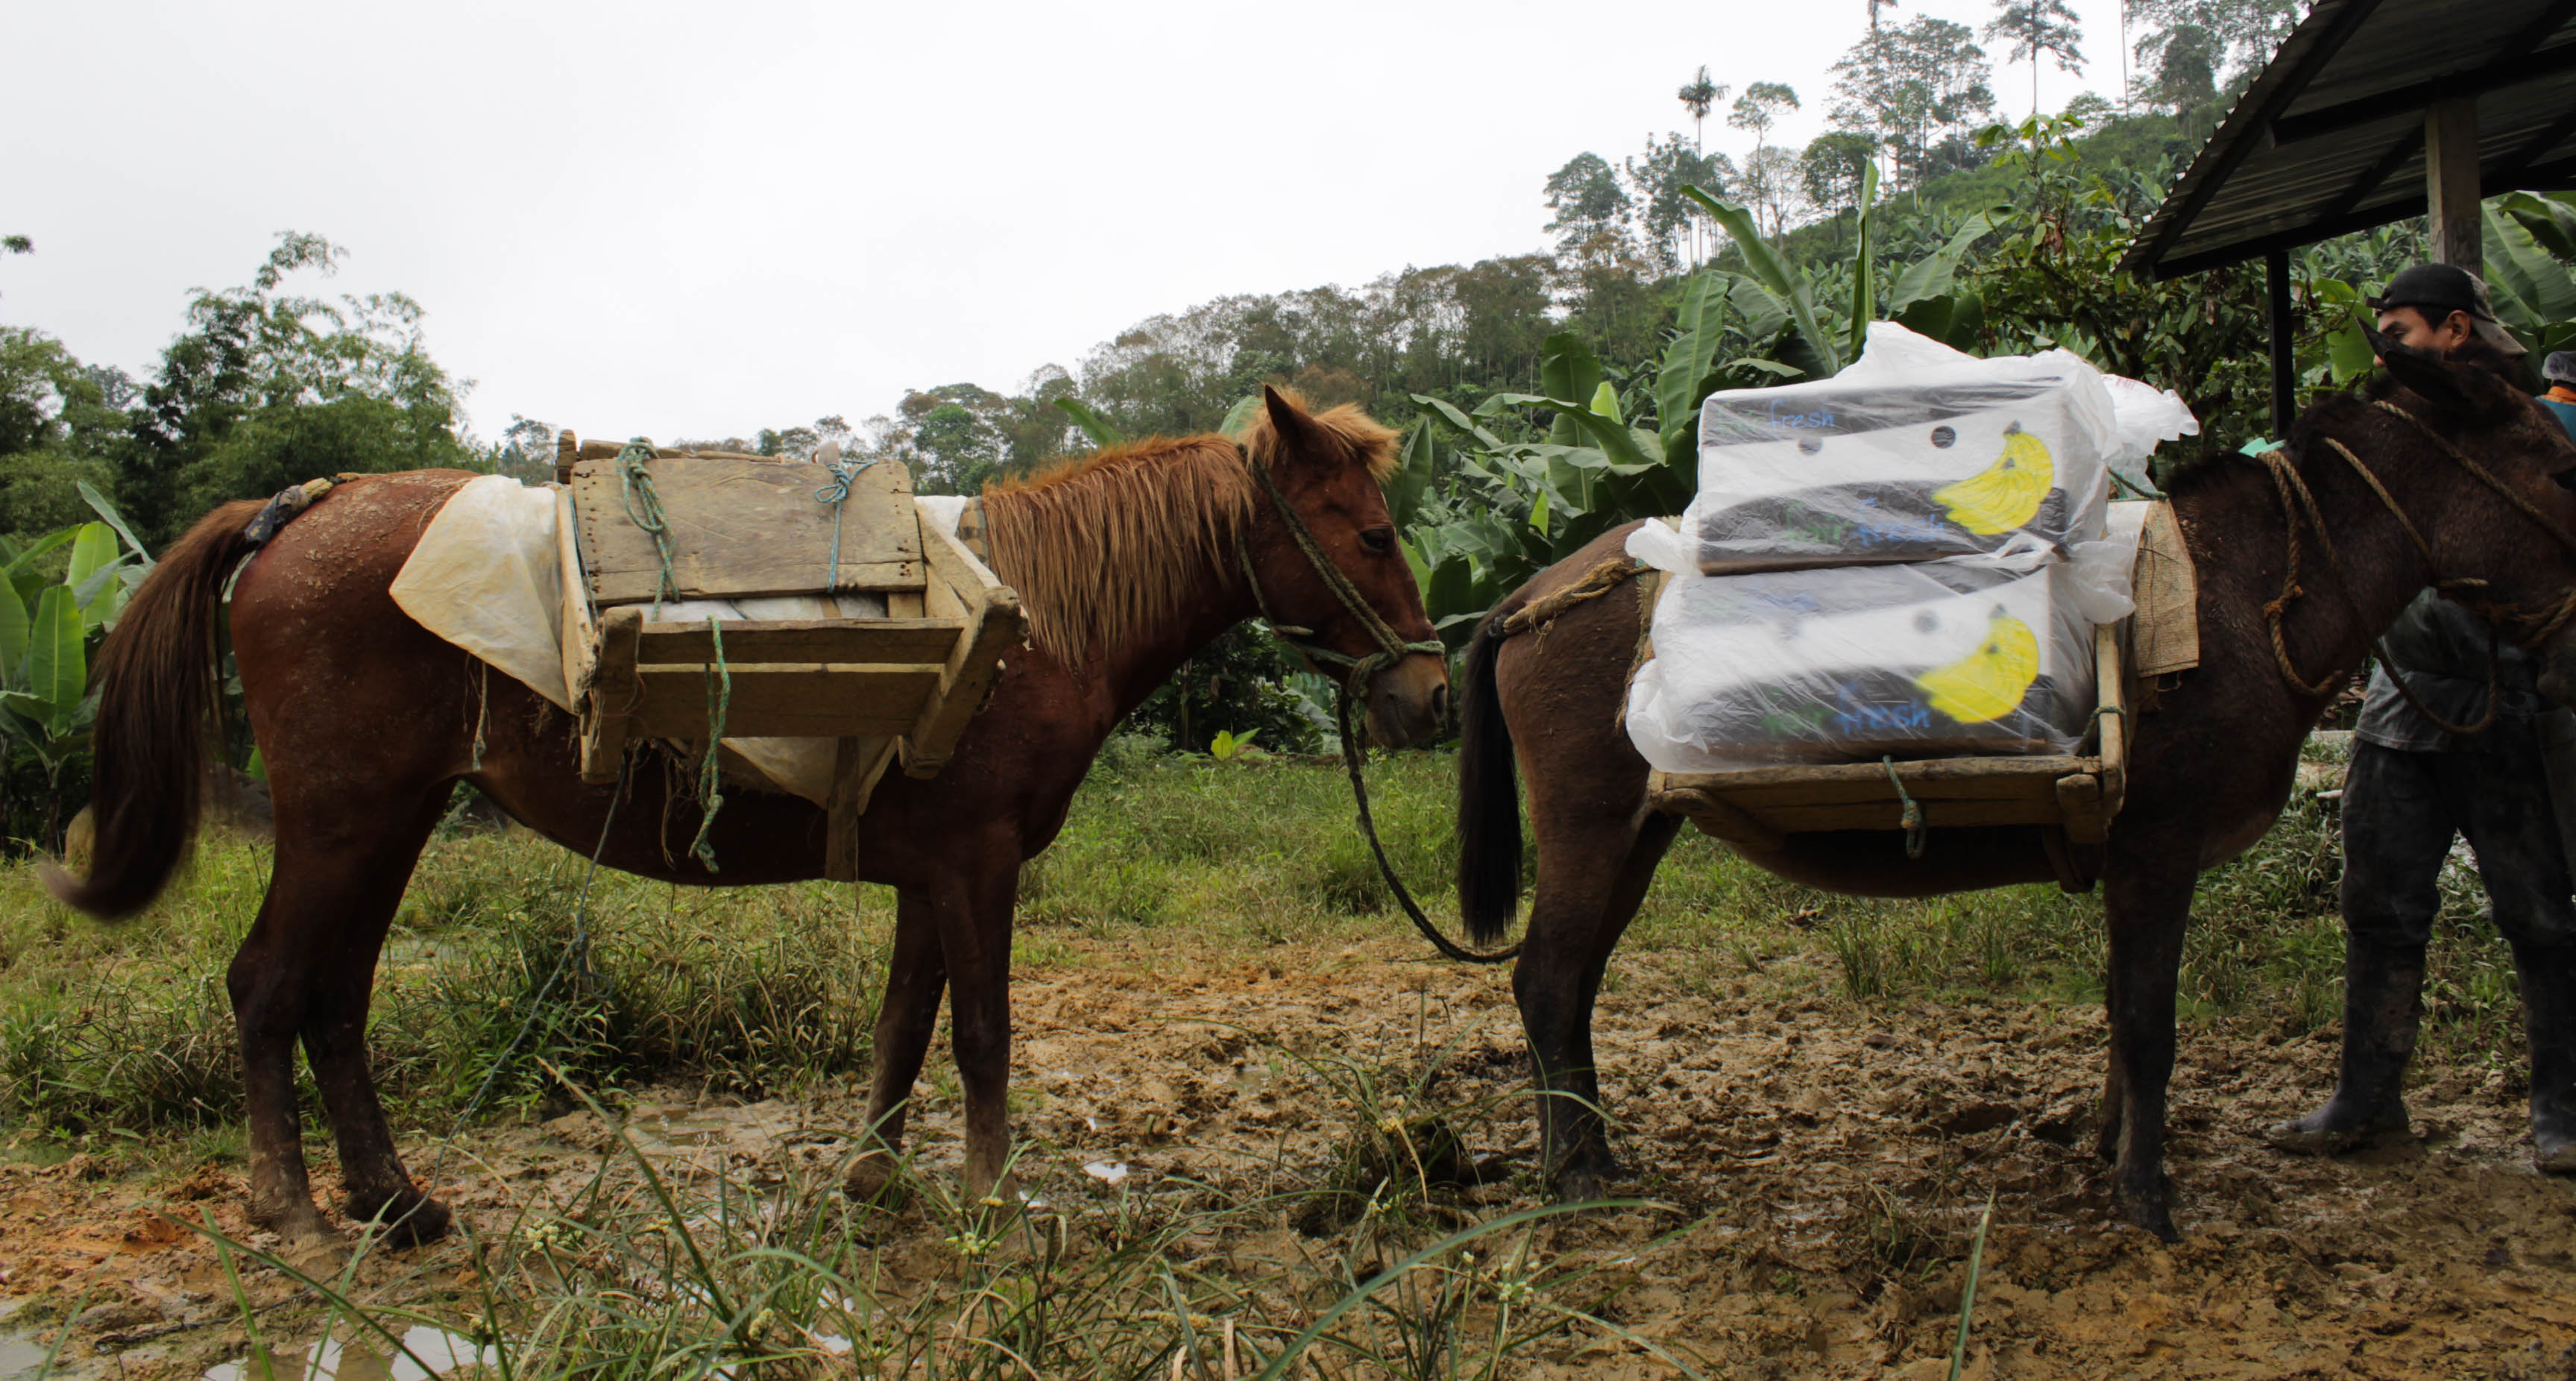 Horses carrying boxes of bananas